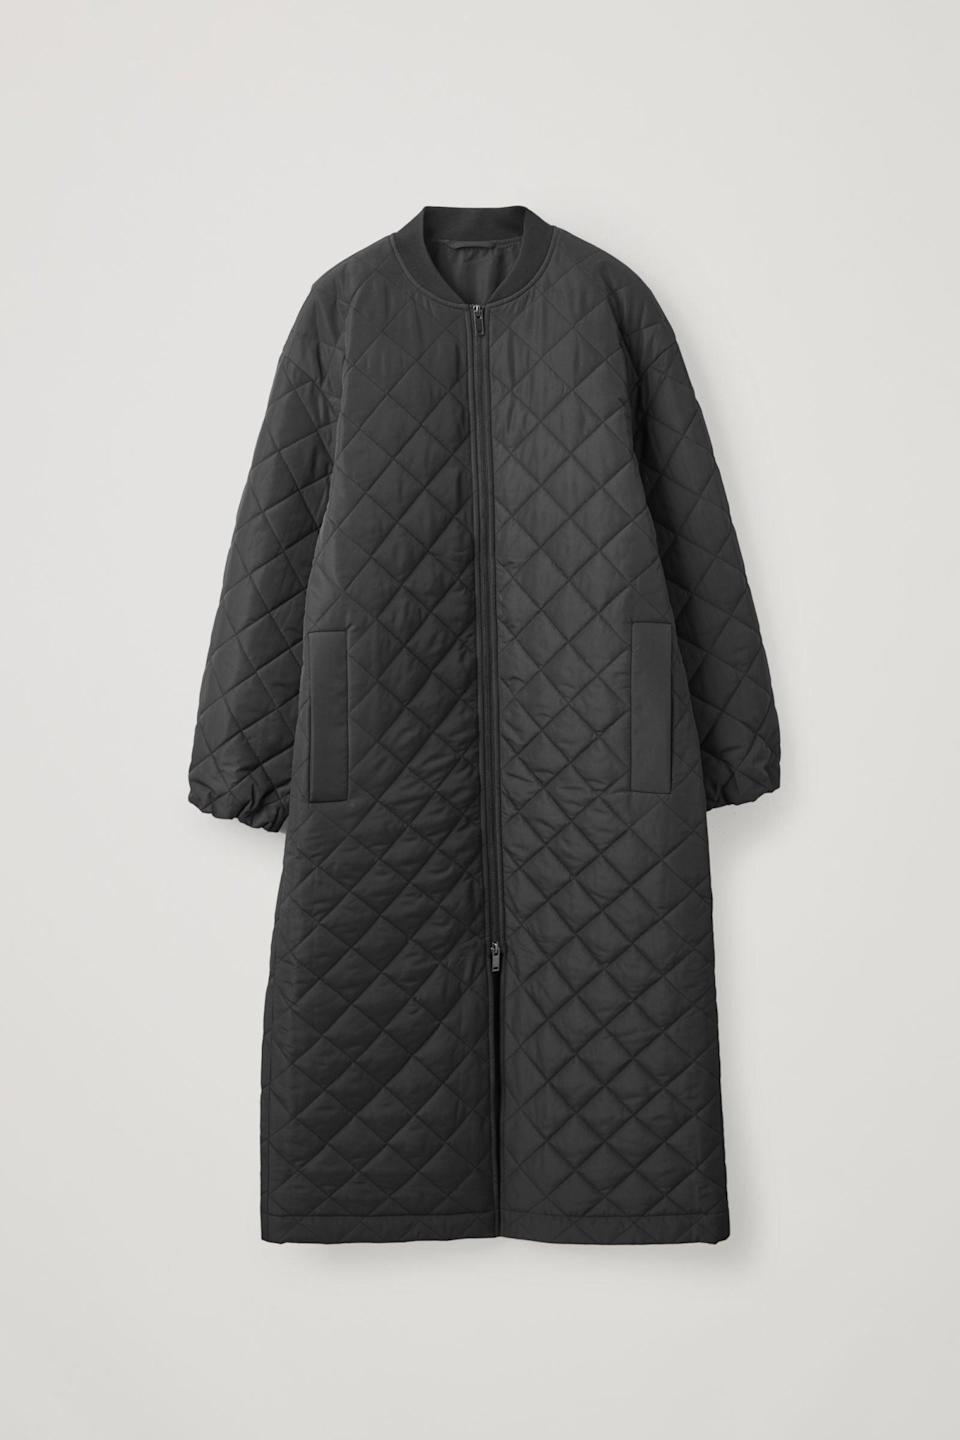 "<br><br><strong>COS</strong> Longline Quilted Coat, $, available at <a href=""https://www.cosstores.com/en_gbp/women/womenswear/coats-and-jackets/product.longline-quilted-coat-black.0928601006.html?gclid=Cj0KCQiA4feBBhC9ARIsABp_nbXwQ8_FwcRz_URTIFkEKUZL5WusKQ2Th-k7A1d--pwIkVPCyQqIxYoaAkHxEALw_wcB"" rel=""nofollow noopener"" target=""_blank"" data-ylk=""slk:COS"" class=""link rapid-noclick-resp"">COS</a>"